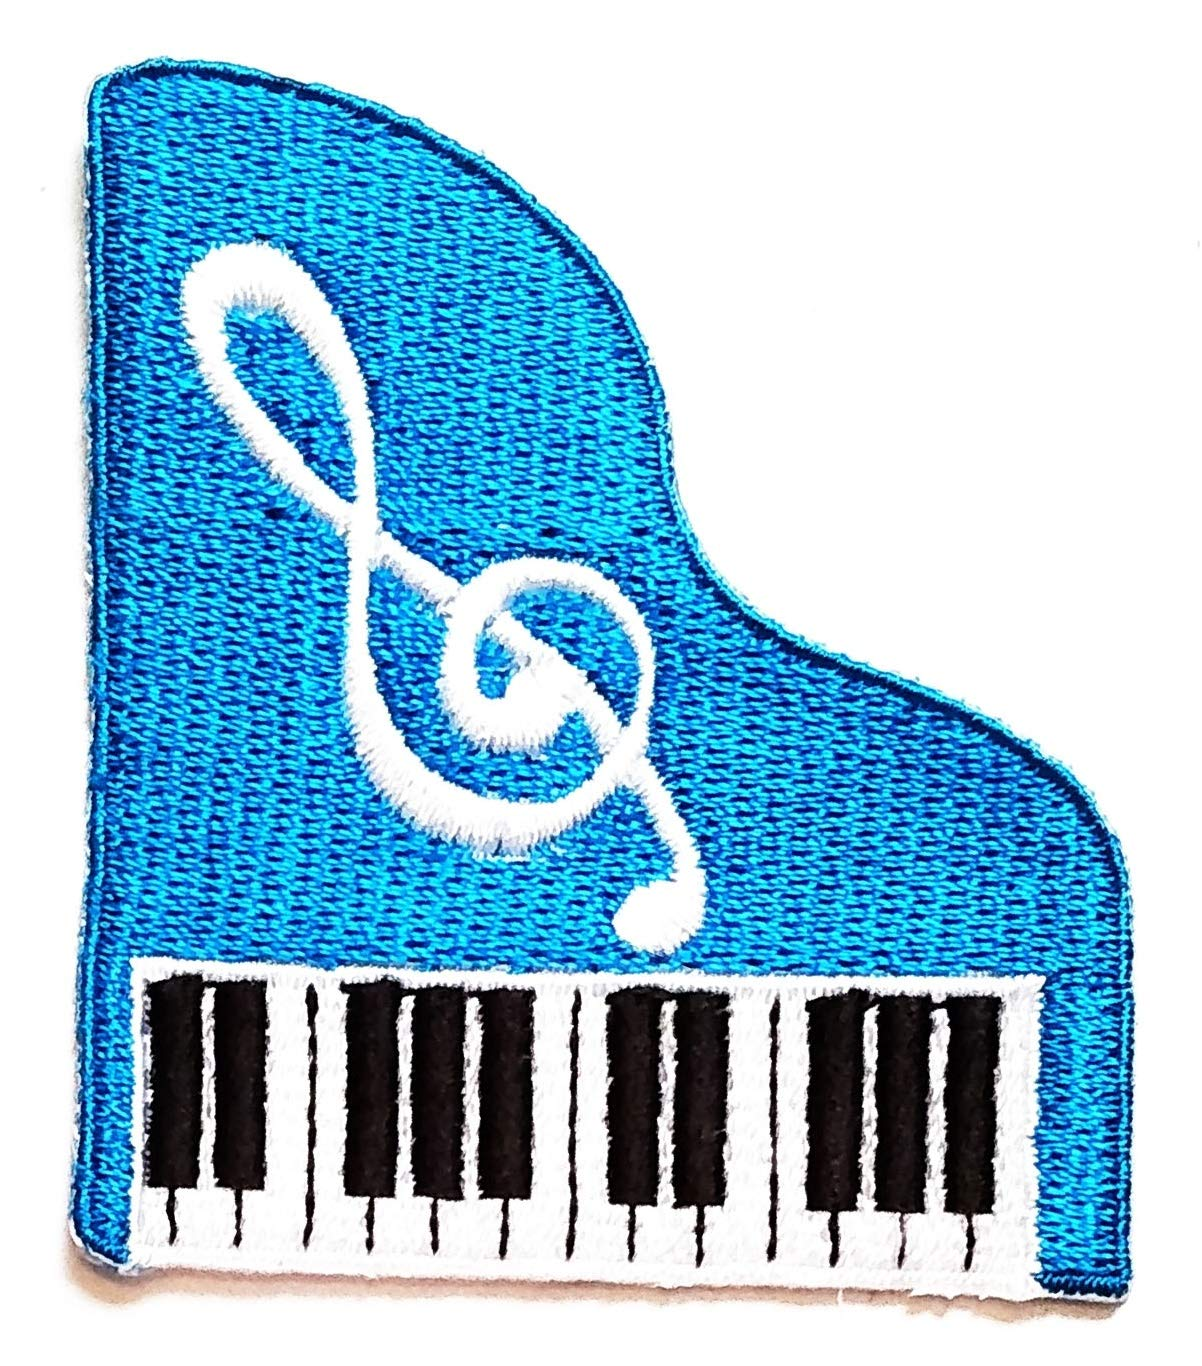 Nipitshop Patches Black Diamond Jewelry Musical Notation Music Note Sign Embroidered Iron on Patch for Clothings Jeans Skirt Vests Scarf Hat Backpacks